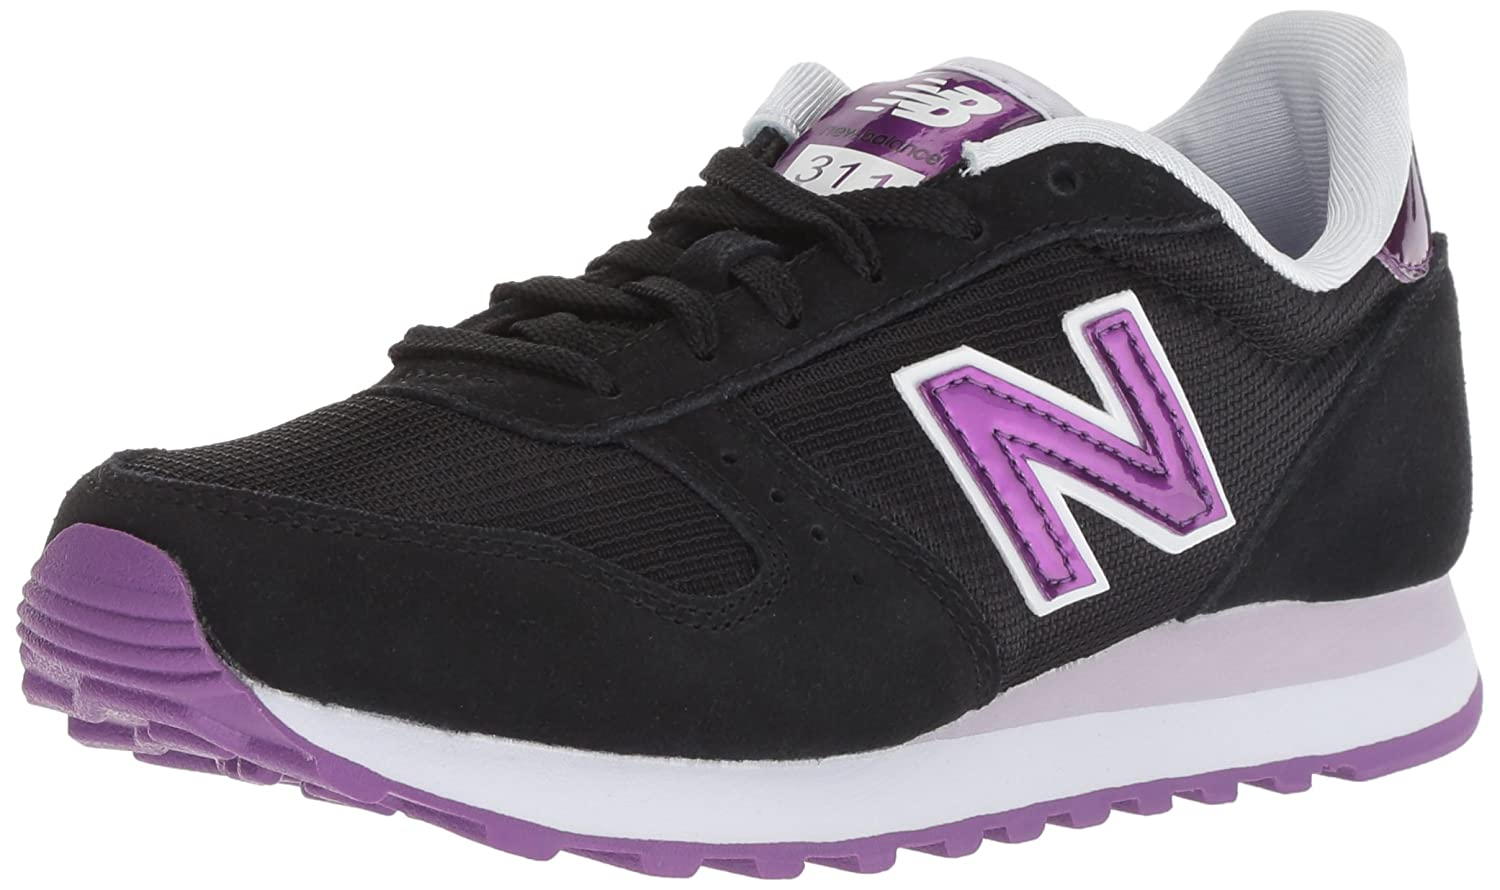 New Balance Women's 311v1 Sneaker B075R7JPF5 6.5 B(M) US|Black